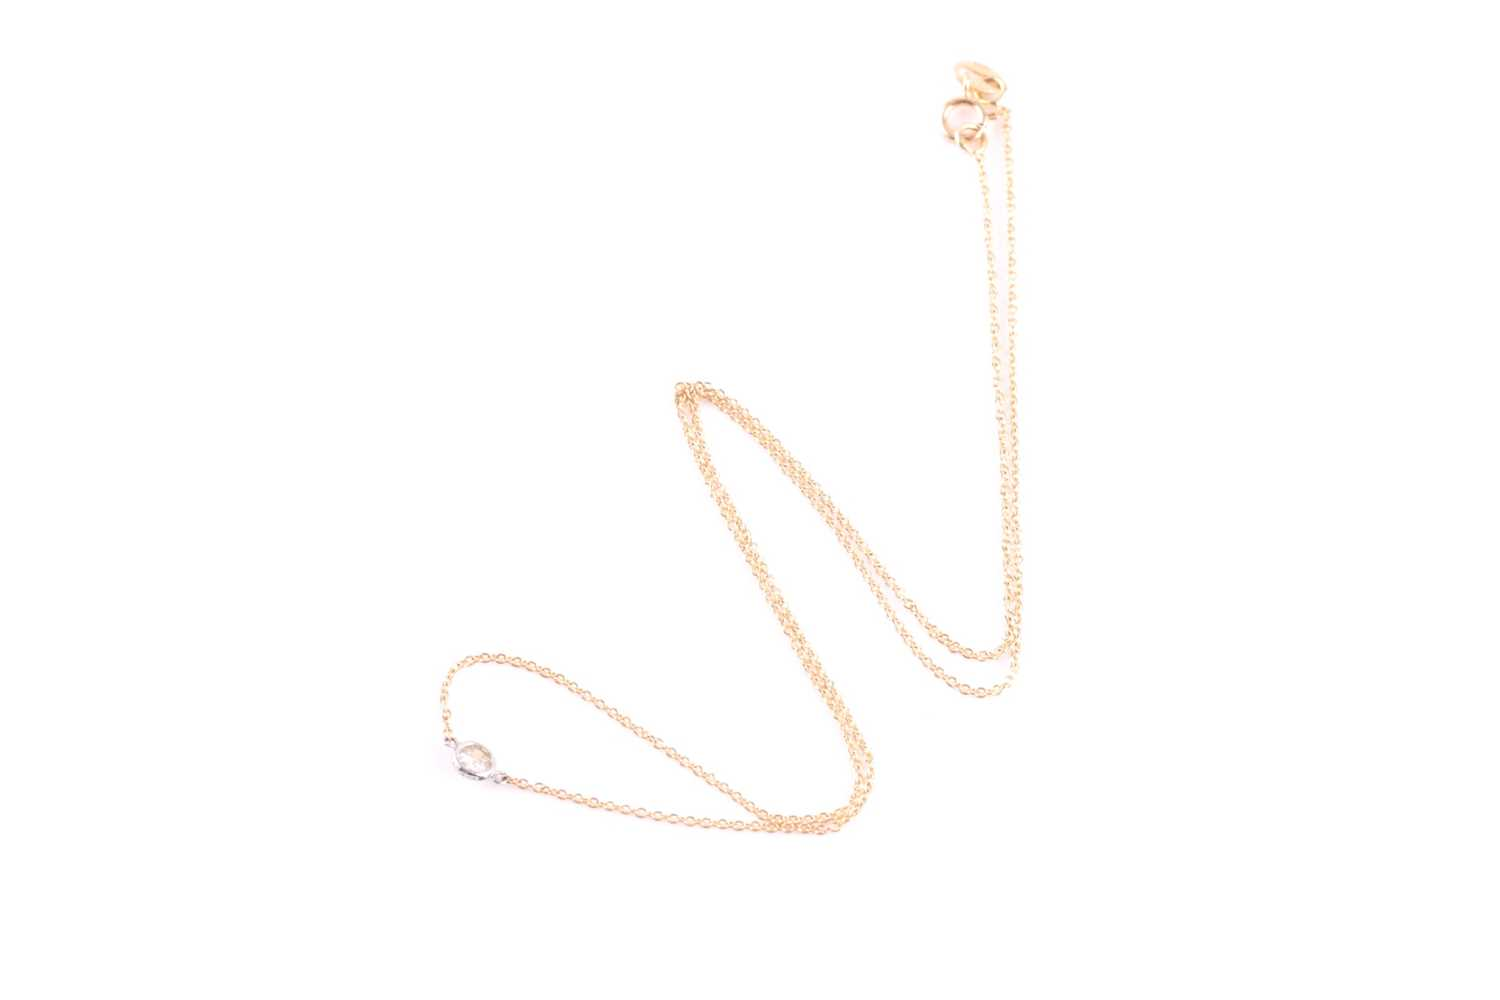 An 18ct yellow gold and diamond necklace, the chain set with a collet-mounted round brilliant-cut